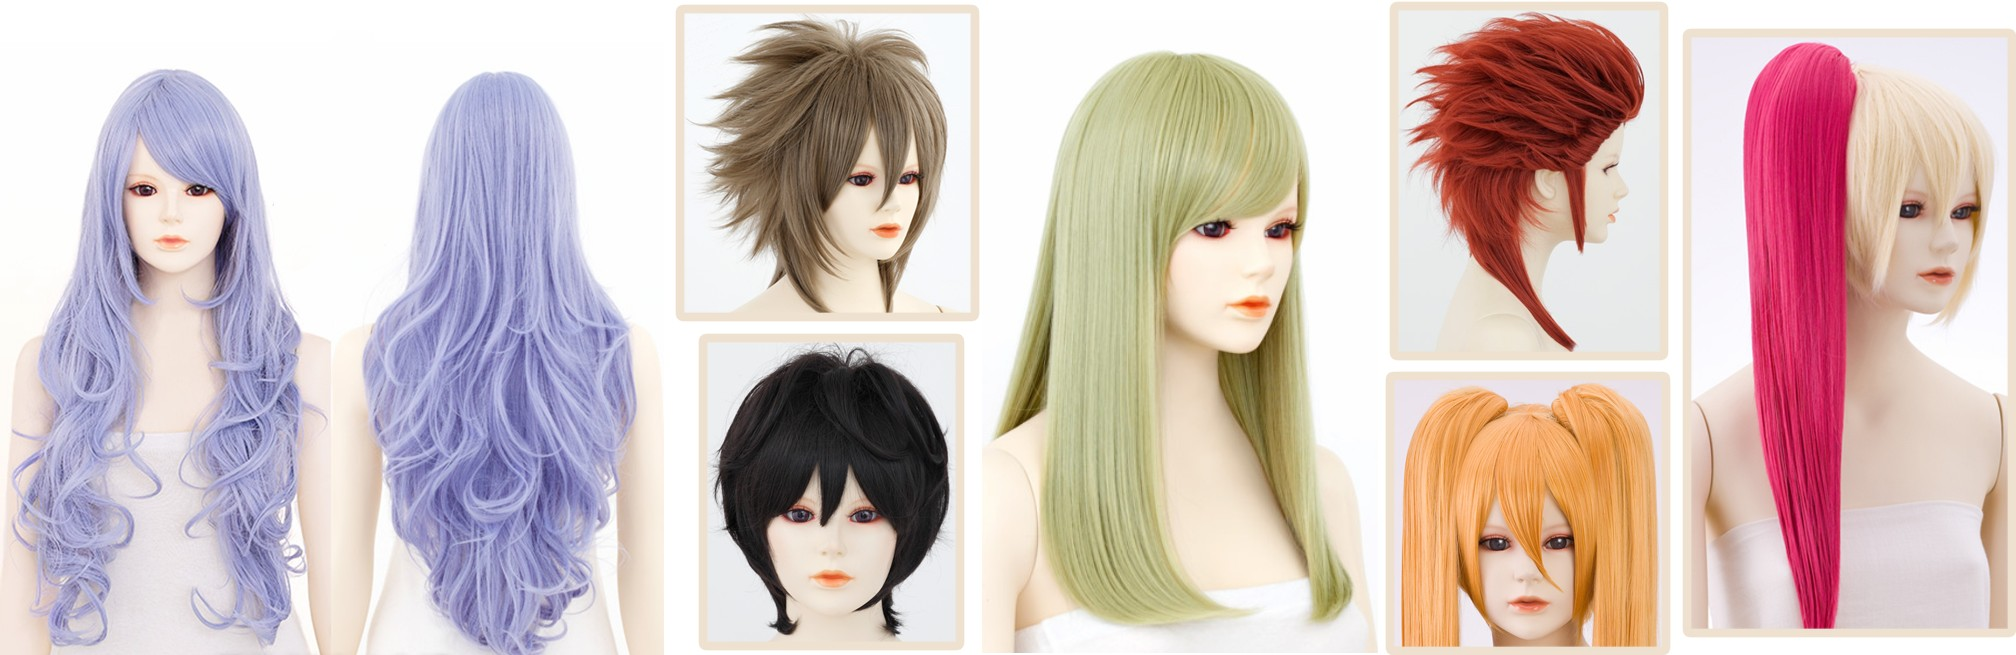 Japanese Cosplay Wig Brands: Airily